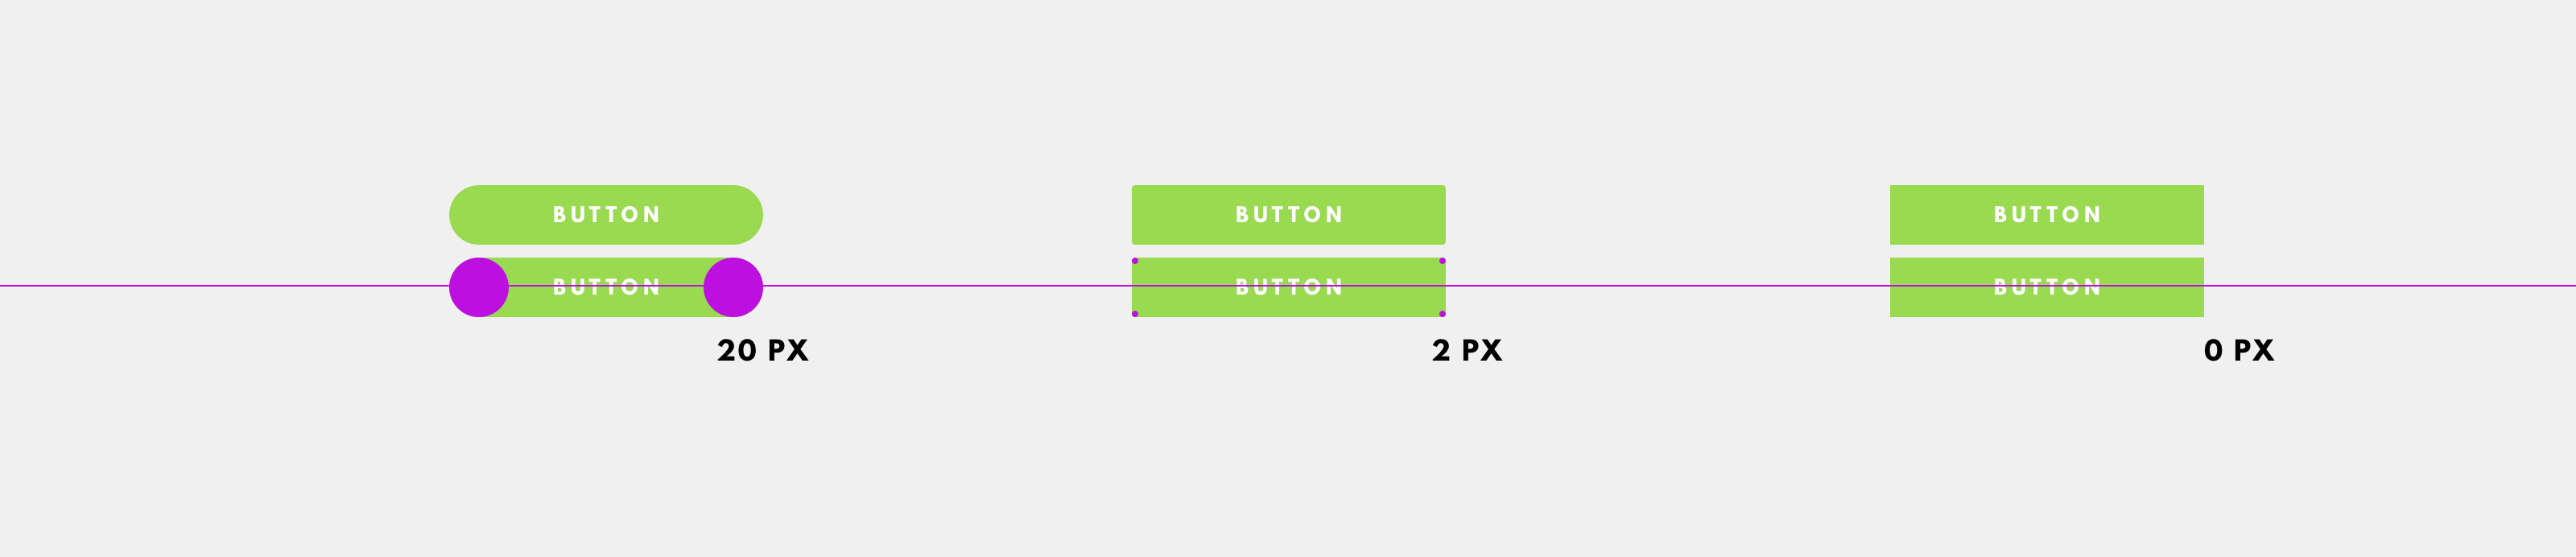 3 different button styles with 20px, 2px, and 0px